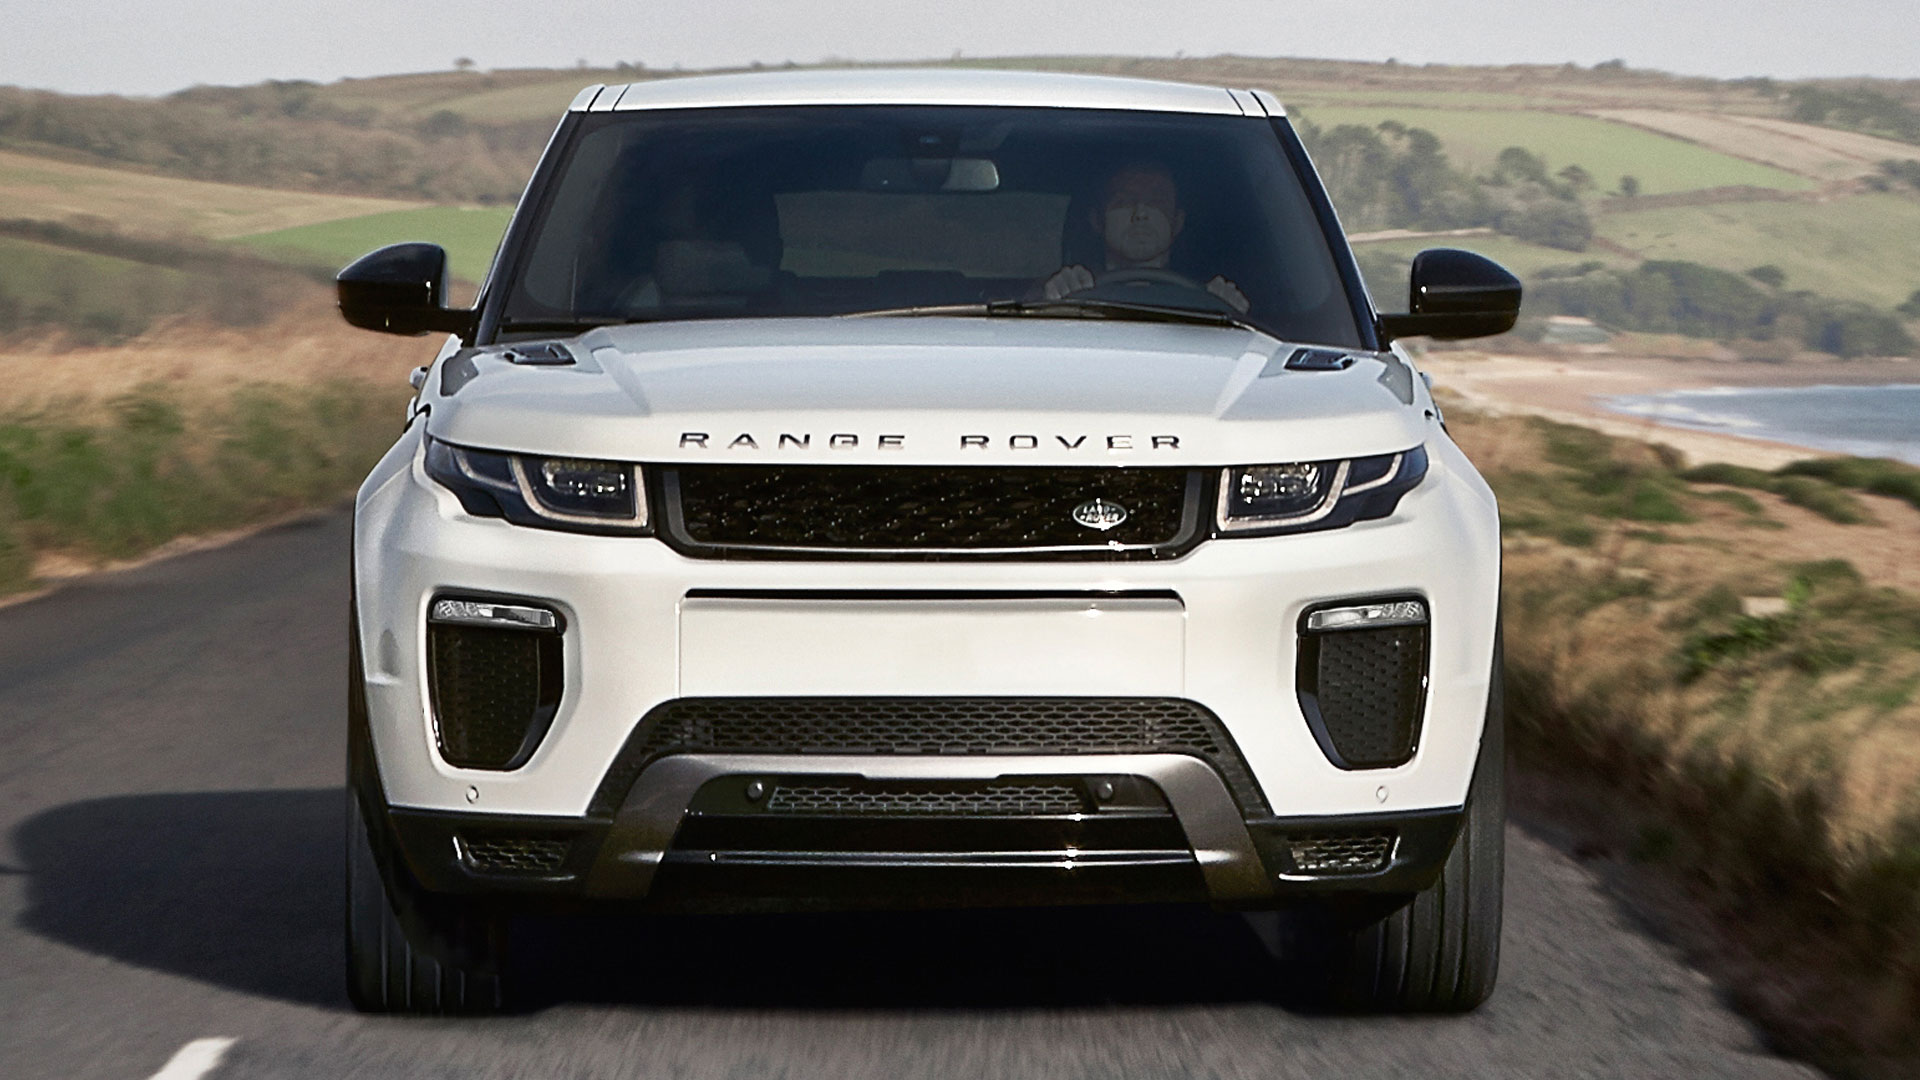 land rover range rover evoque 2017 price mileage reviews specification gallery overdrive. Black Bedroom Furniture Sets. Home Design Ideas